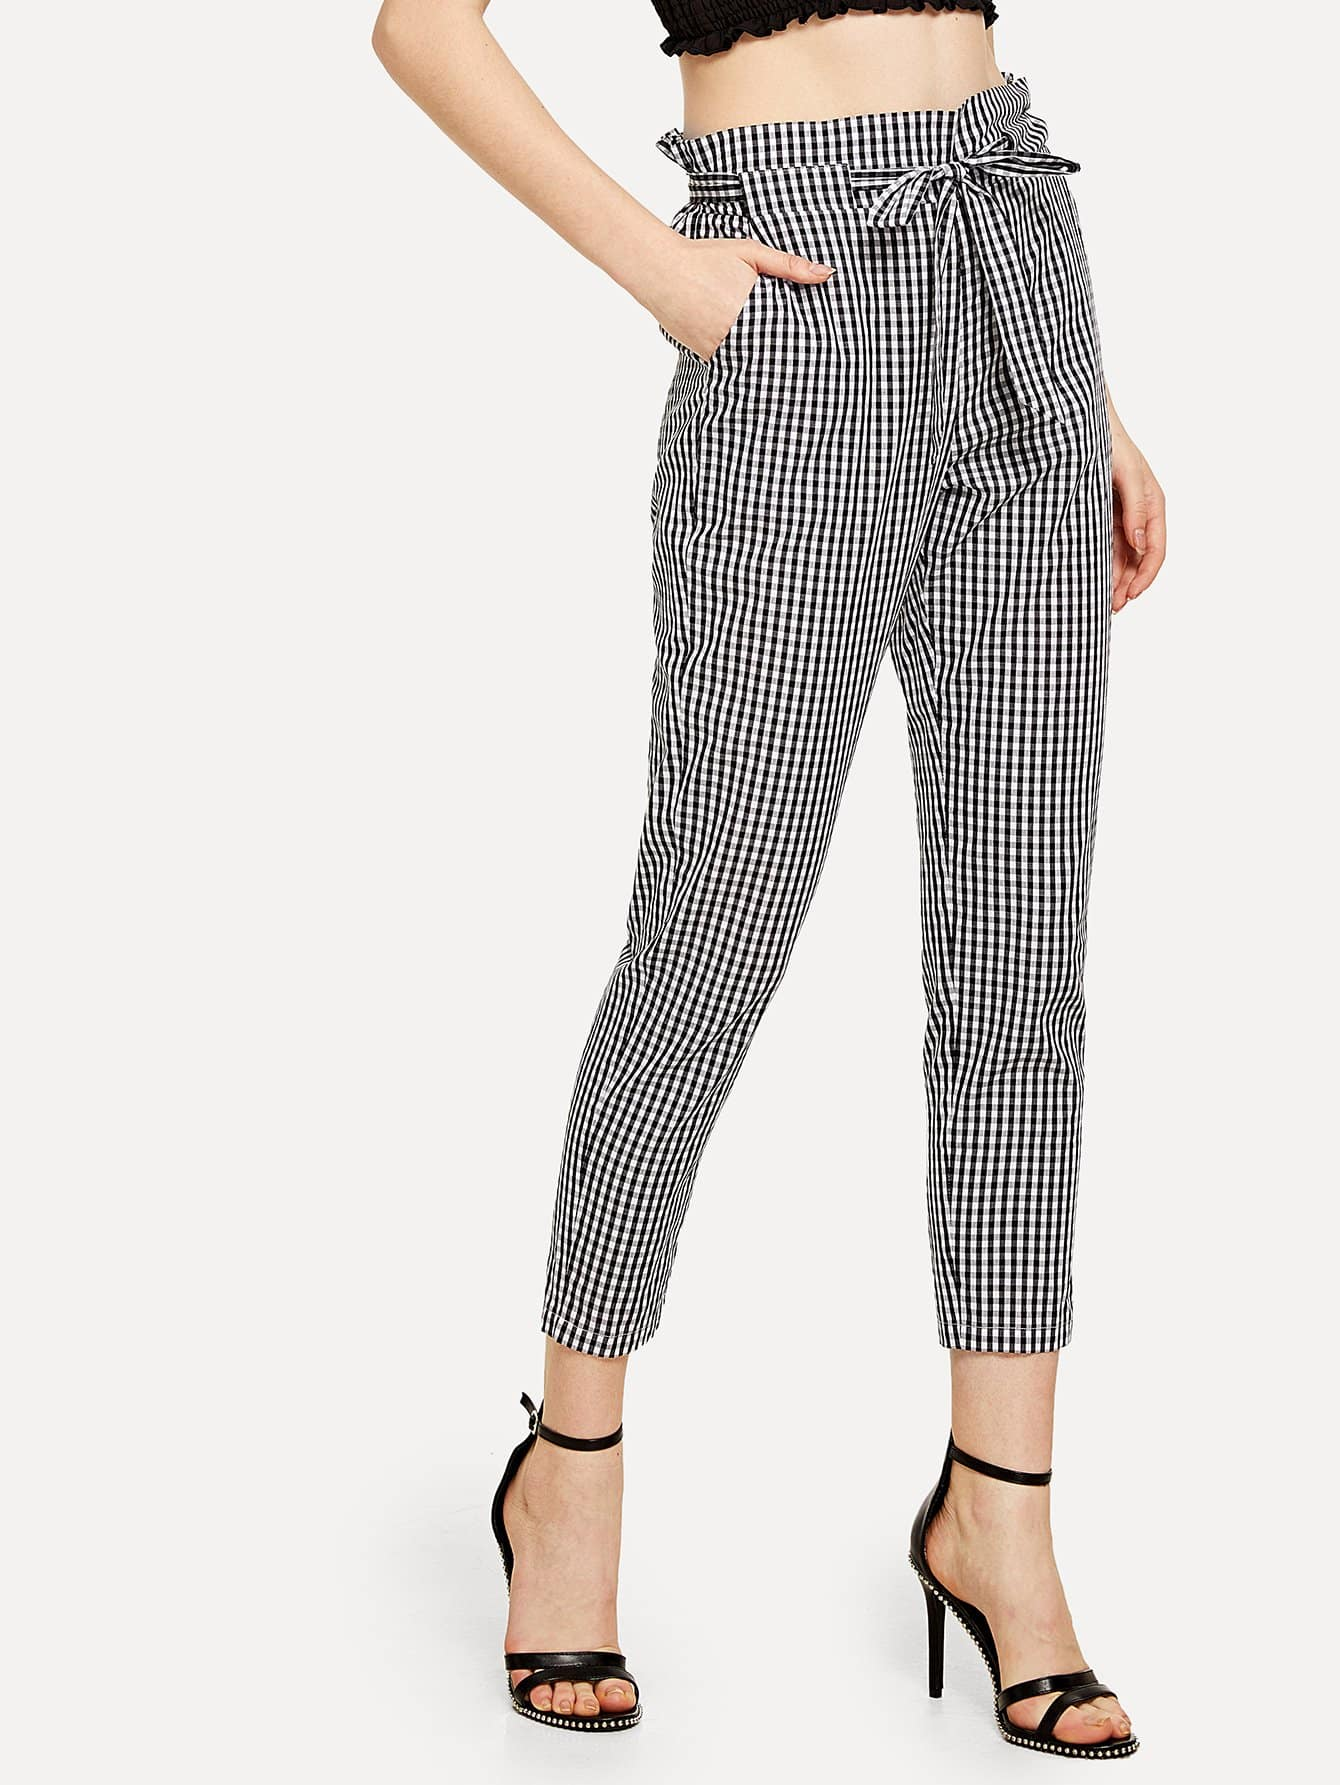 Self Tie Waist Pocket Side Plaid Pants pocket side elastic waist pants